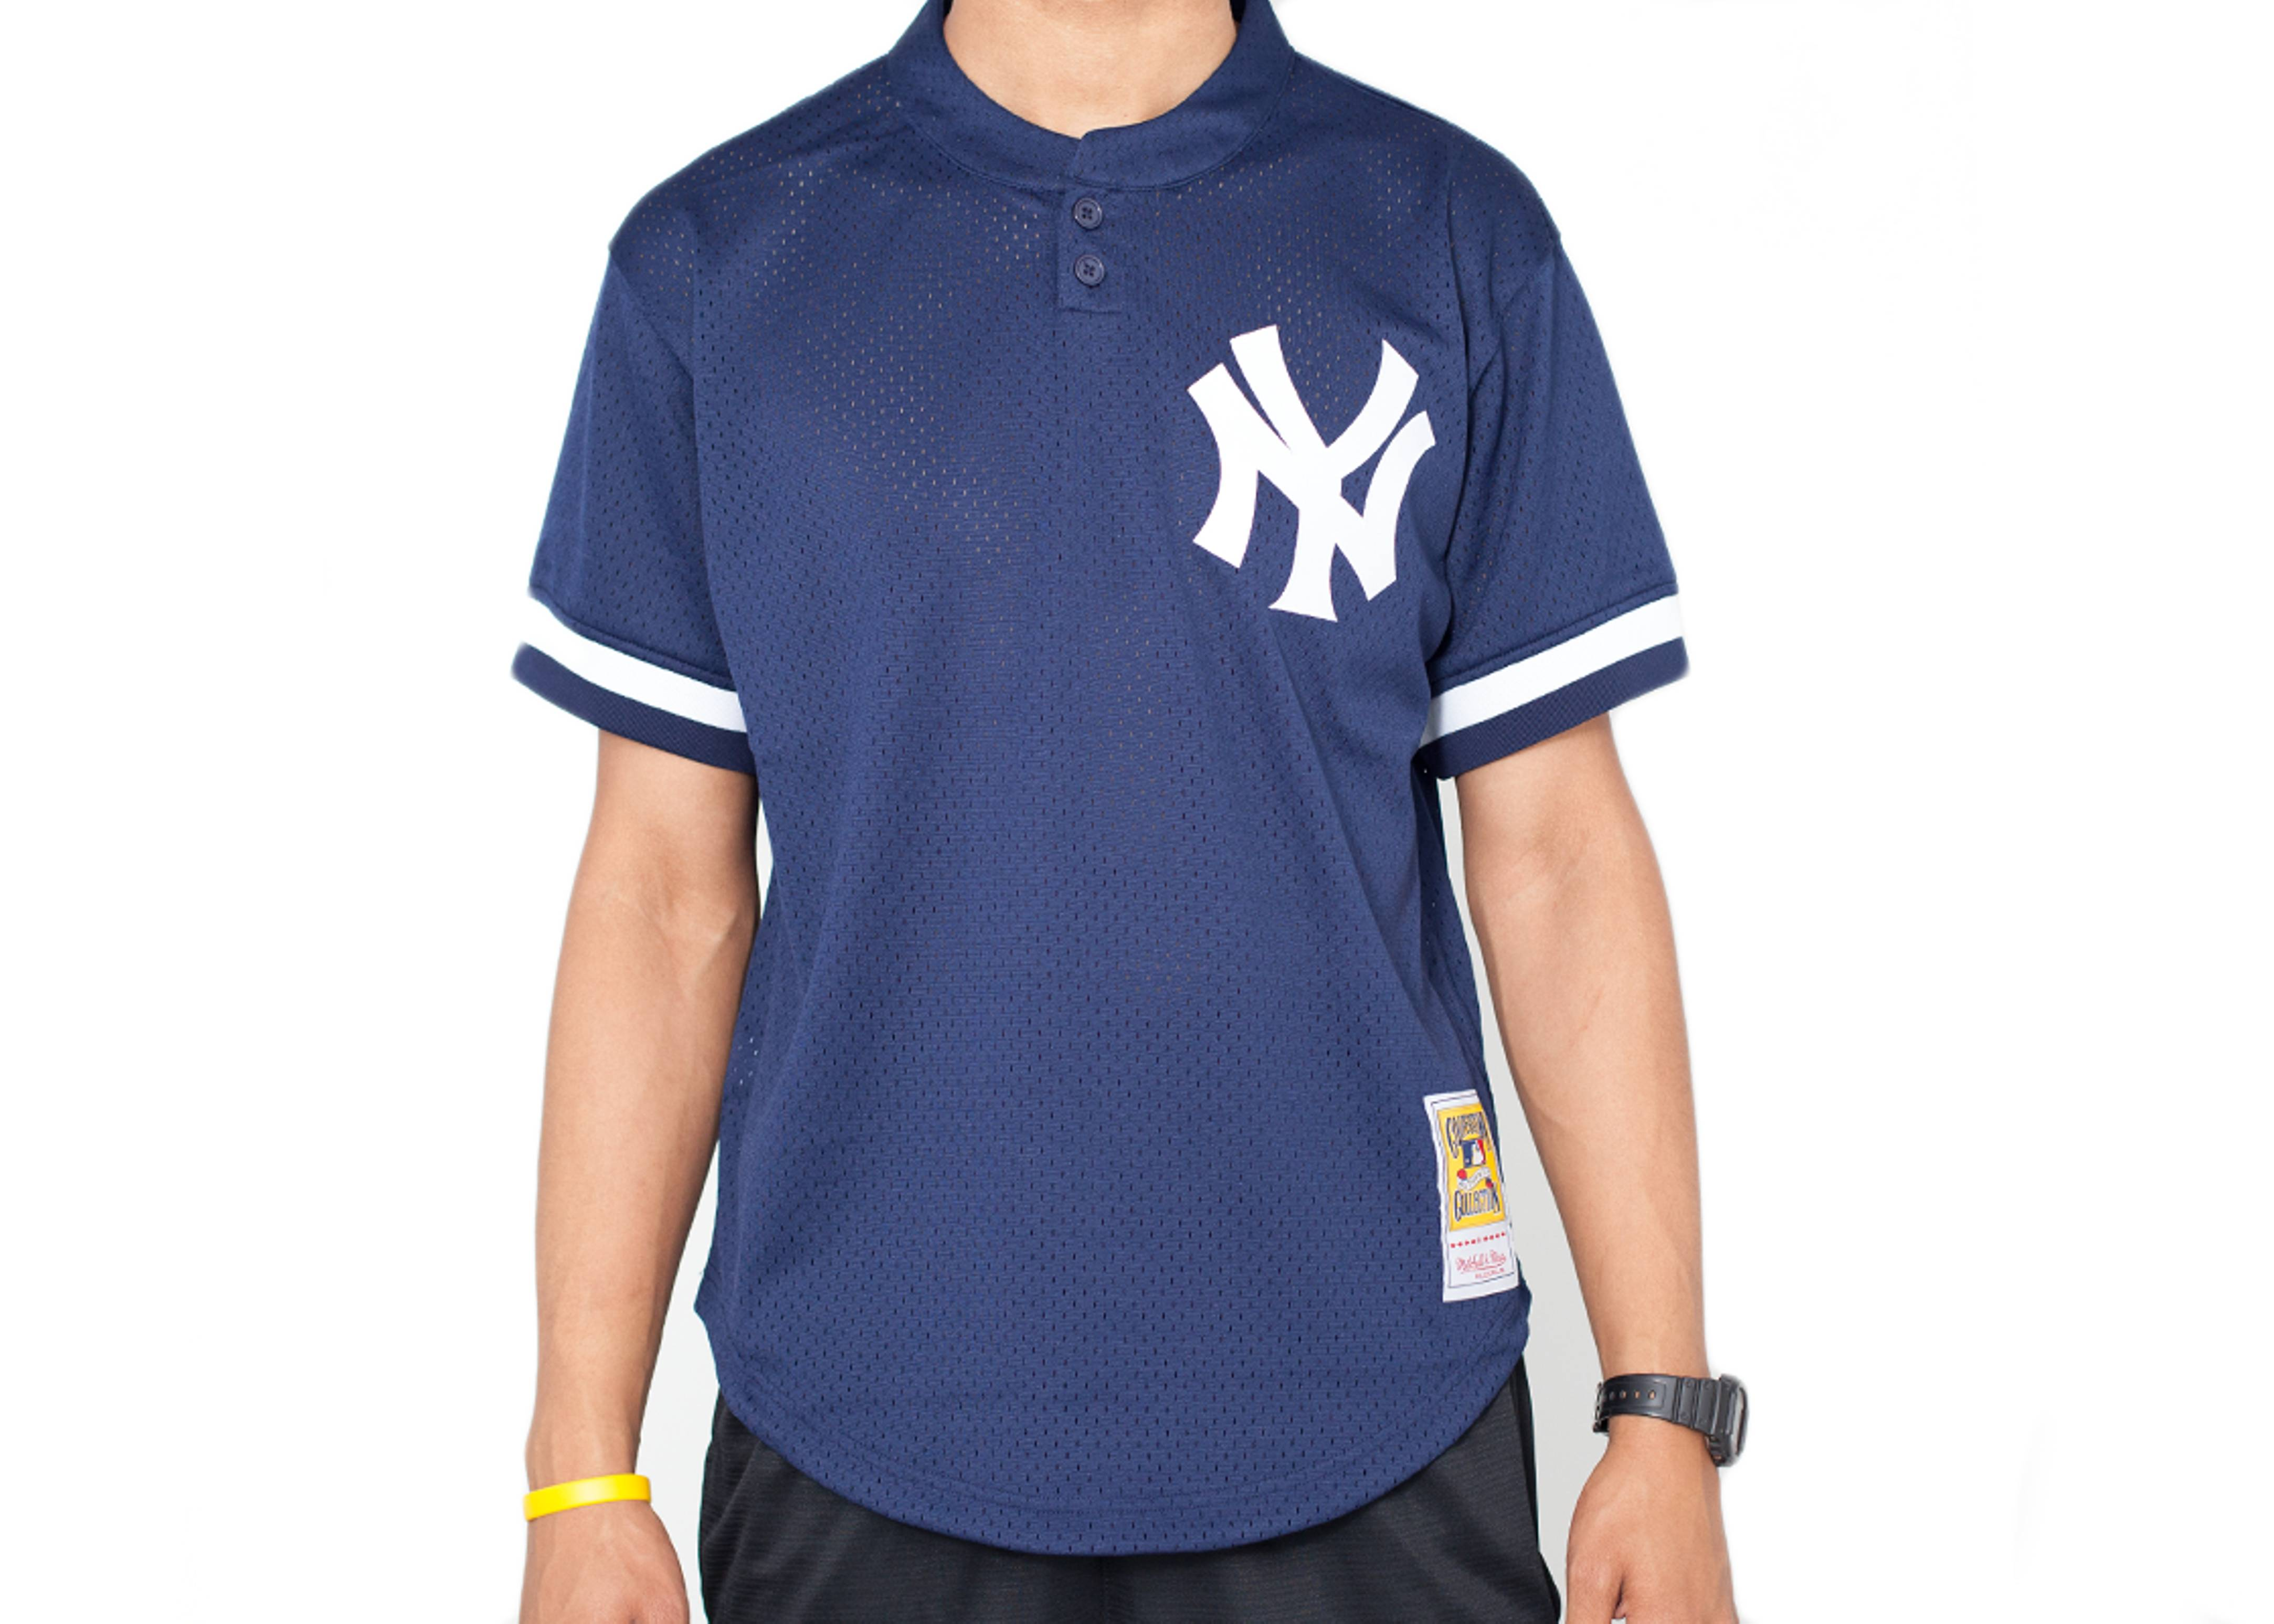 on sale 6e60e 3ff83 New York Yankees Authentic Mesh Bp Jersey